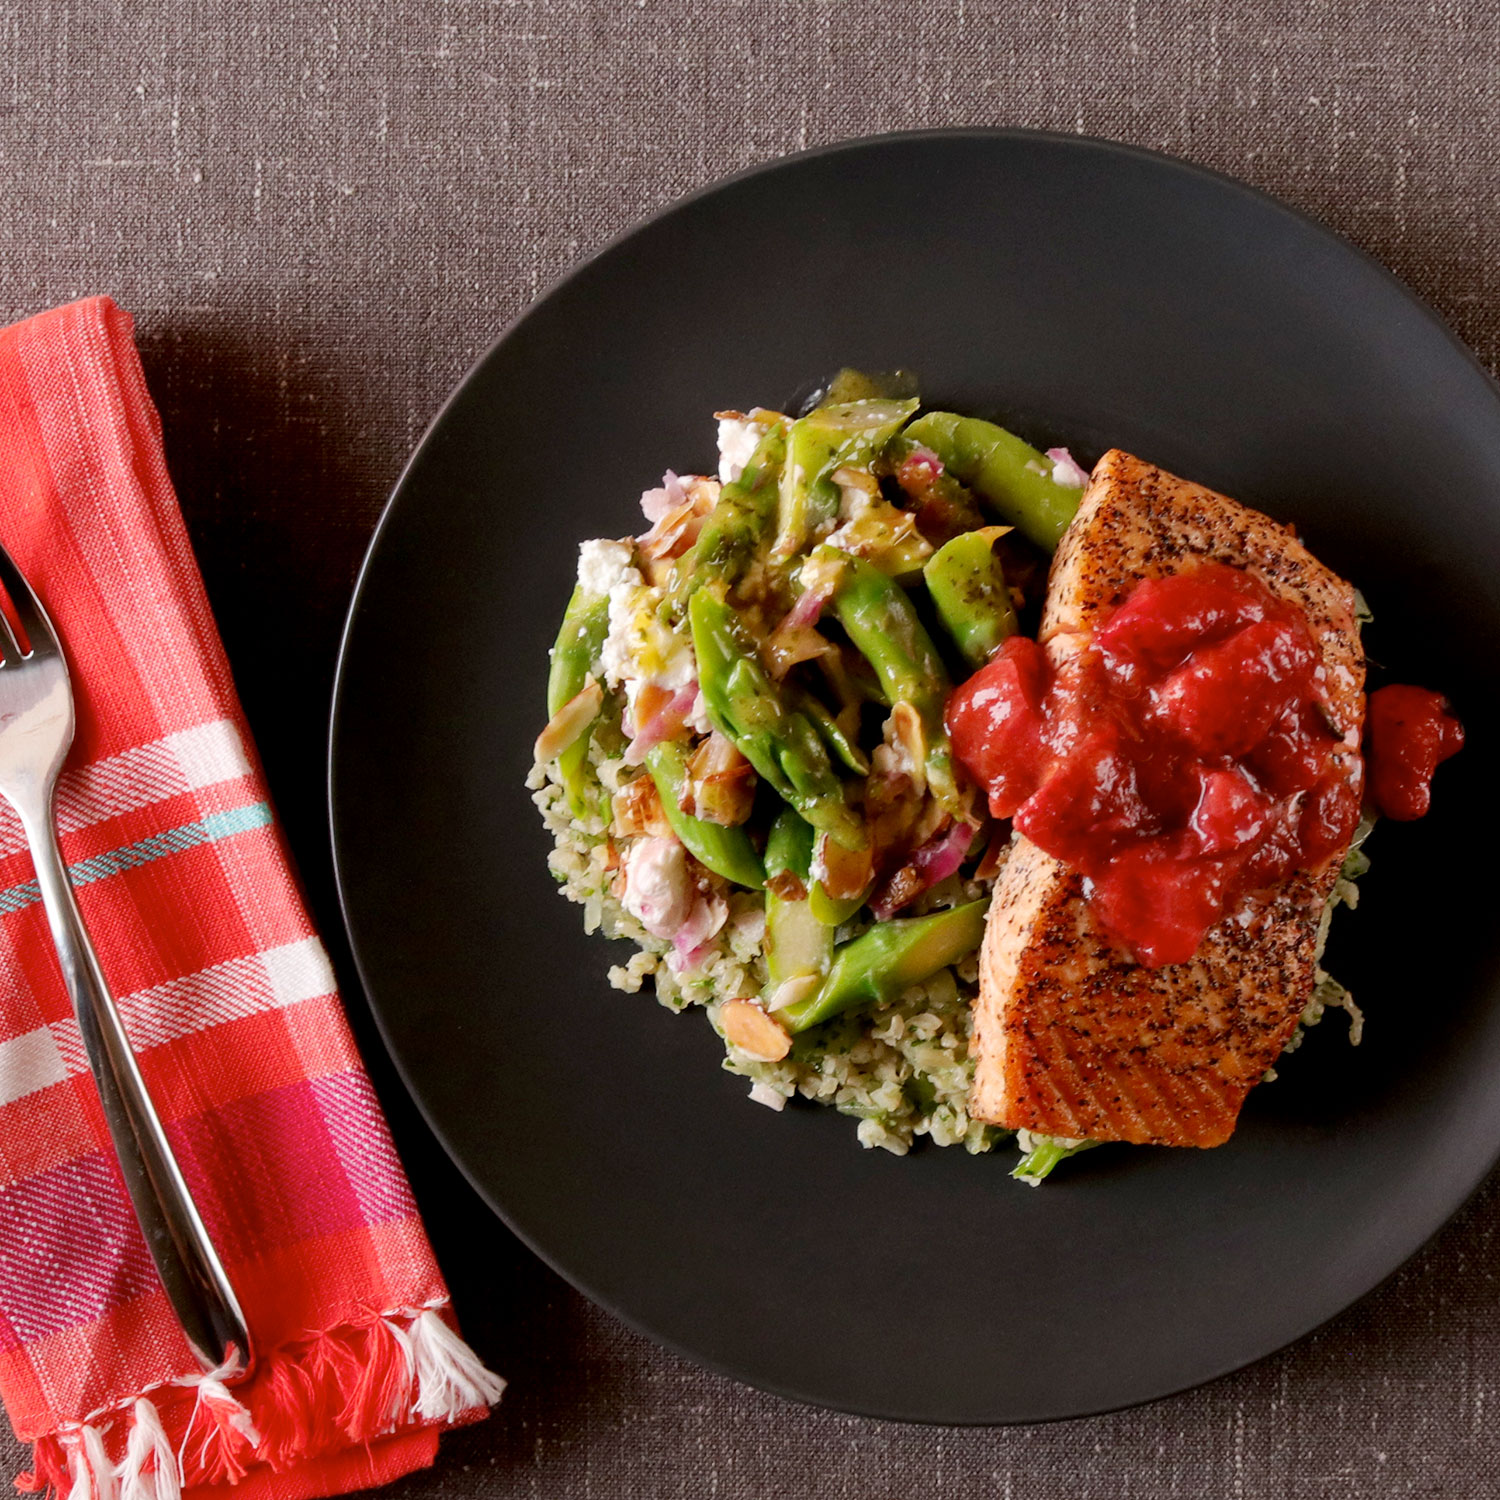 Baked Salmon Filet w/ Strawberry Rhubarb Compote